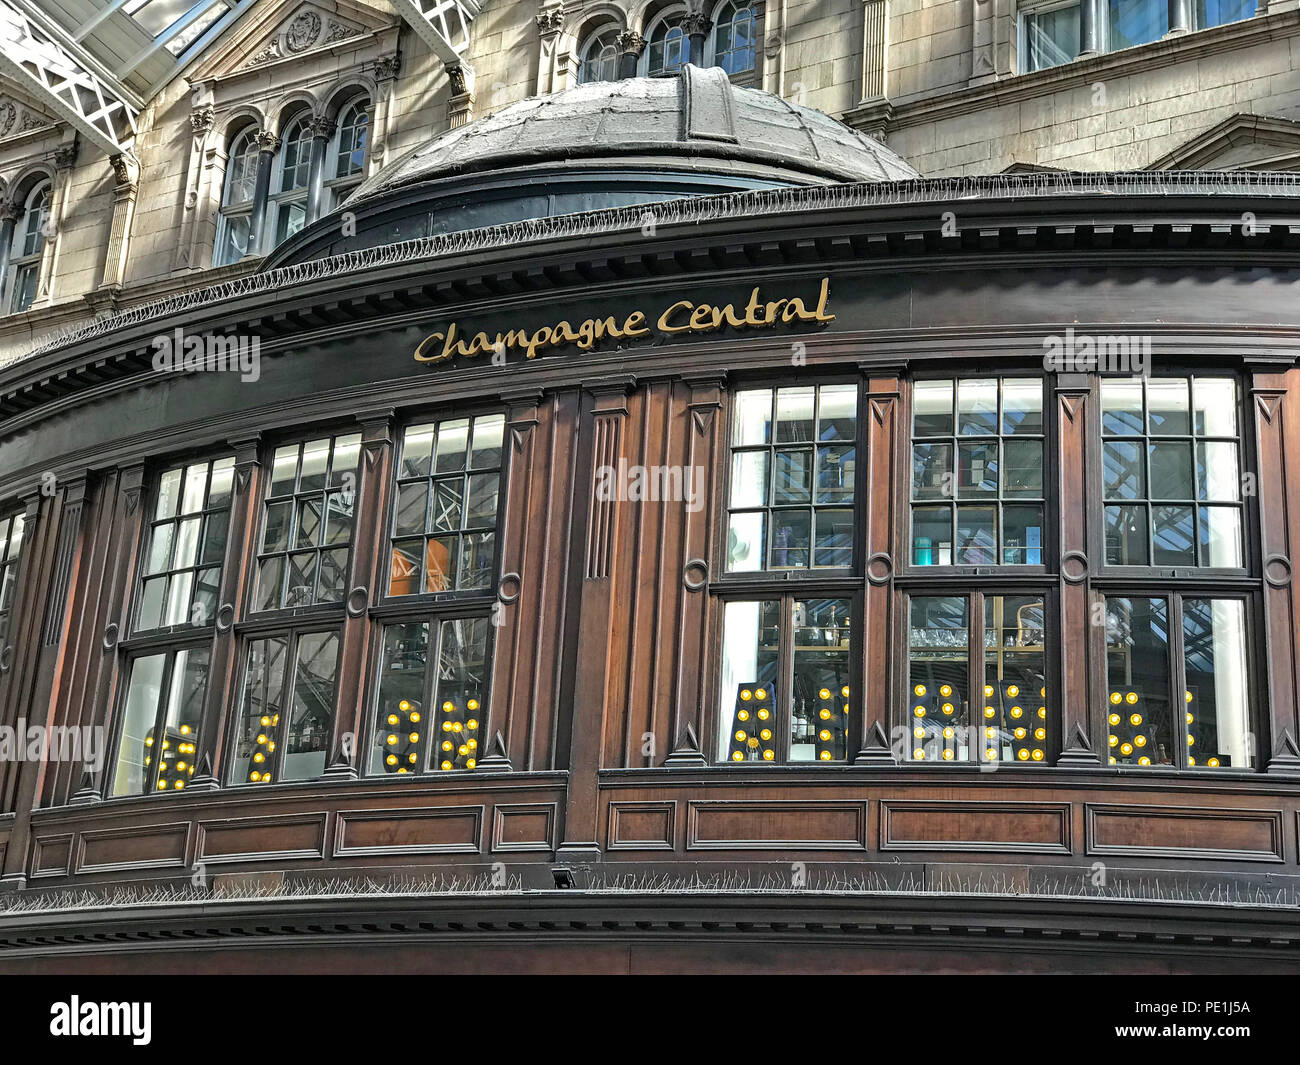 Champagne Central bar, Gordon St, Glasgow, Scotland UK - Stock Image